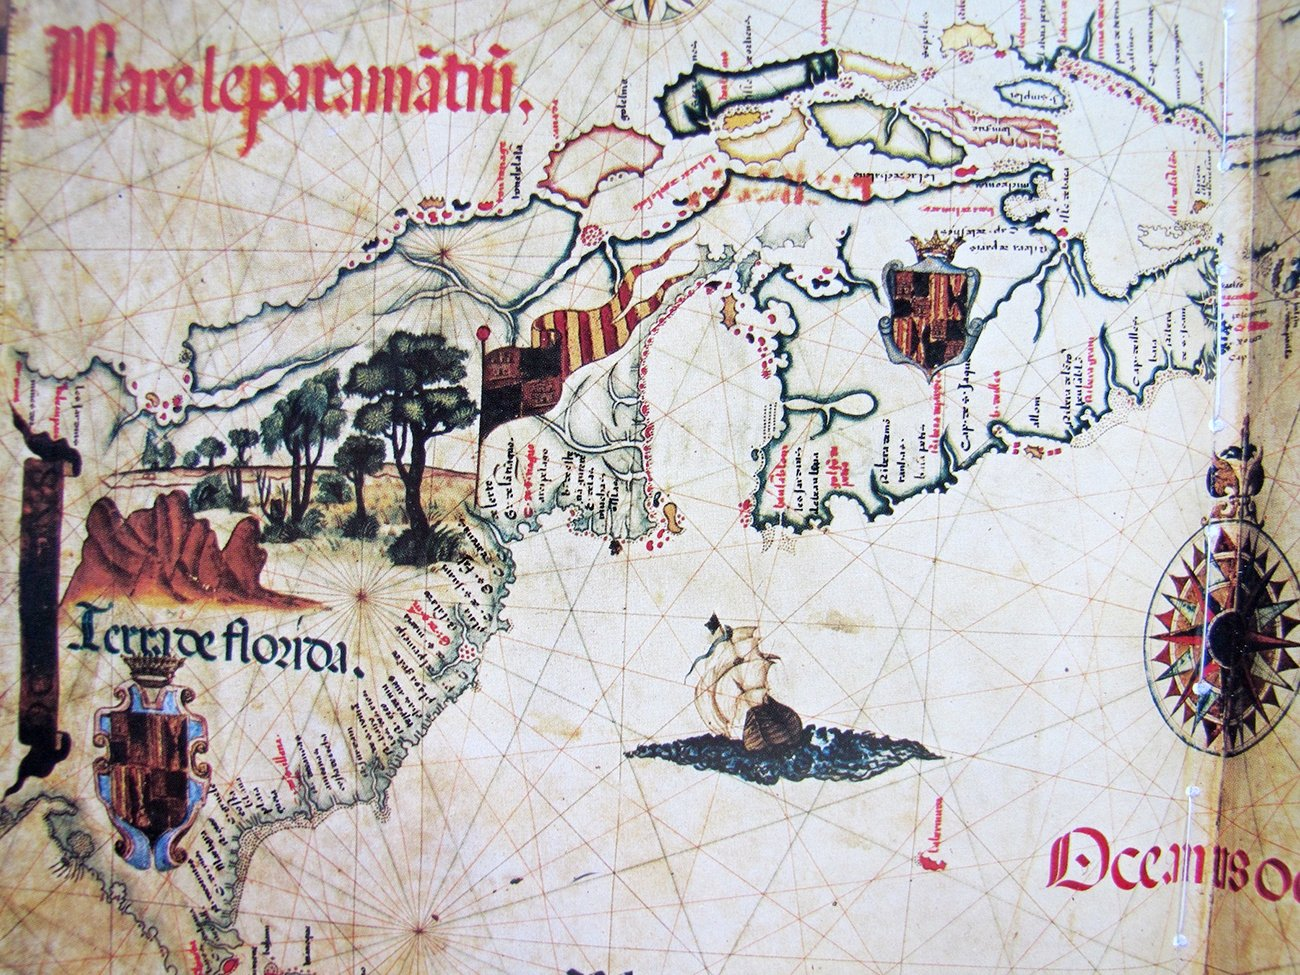 Diego Homen's 1558 Map based on second hand accounts contained many errors and omissions